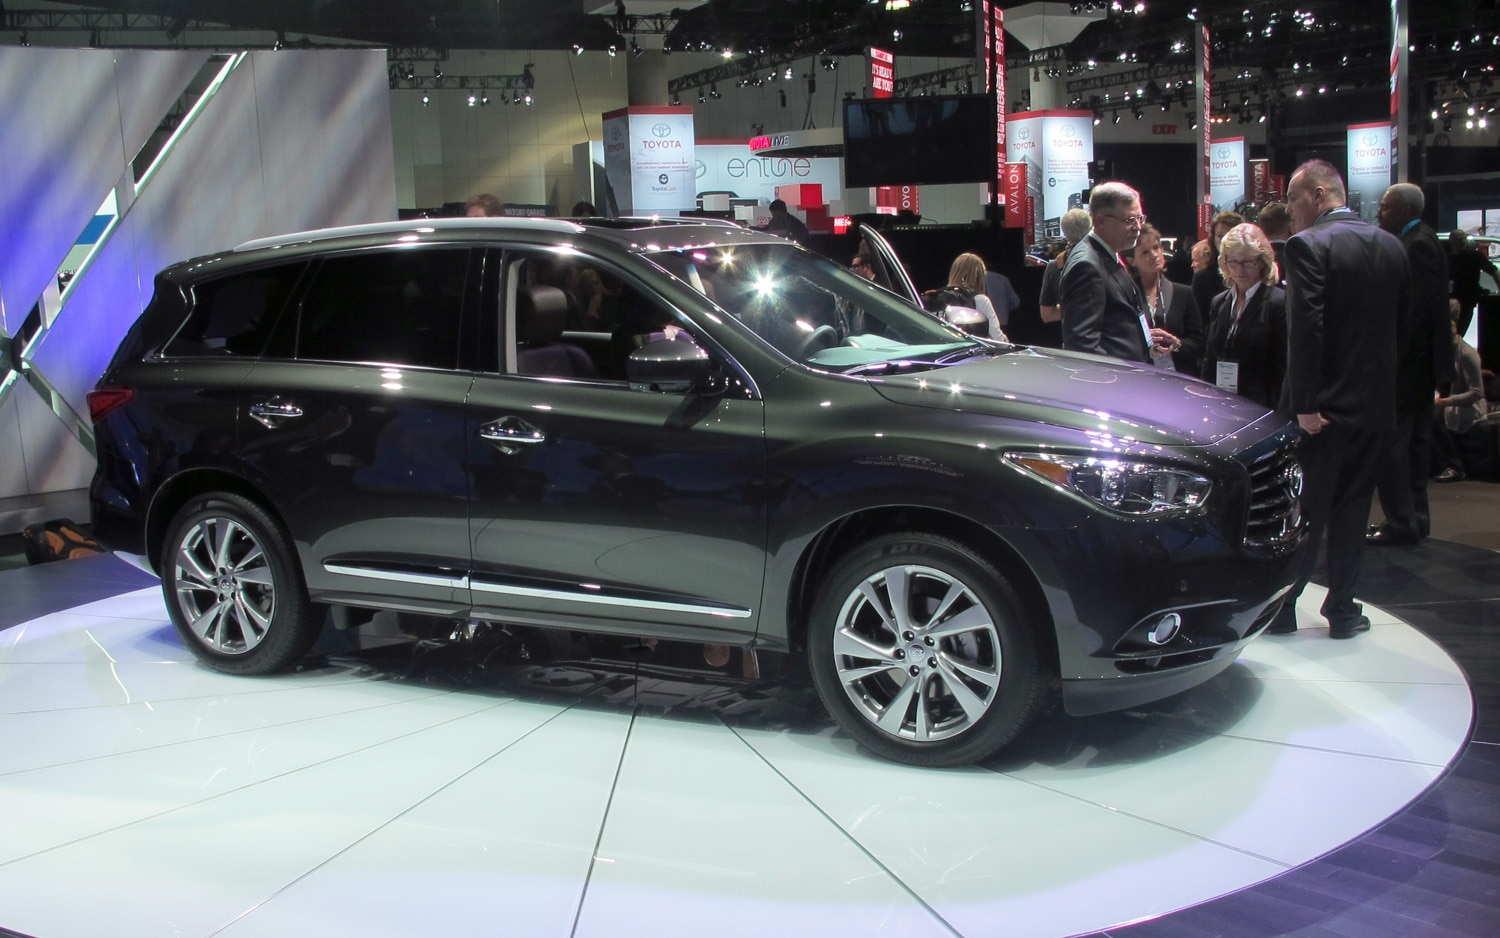 Los angeles 2011 2013 infiniti jx35 is the best of both suv worlds show more vanachro Images